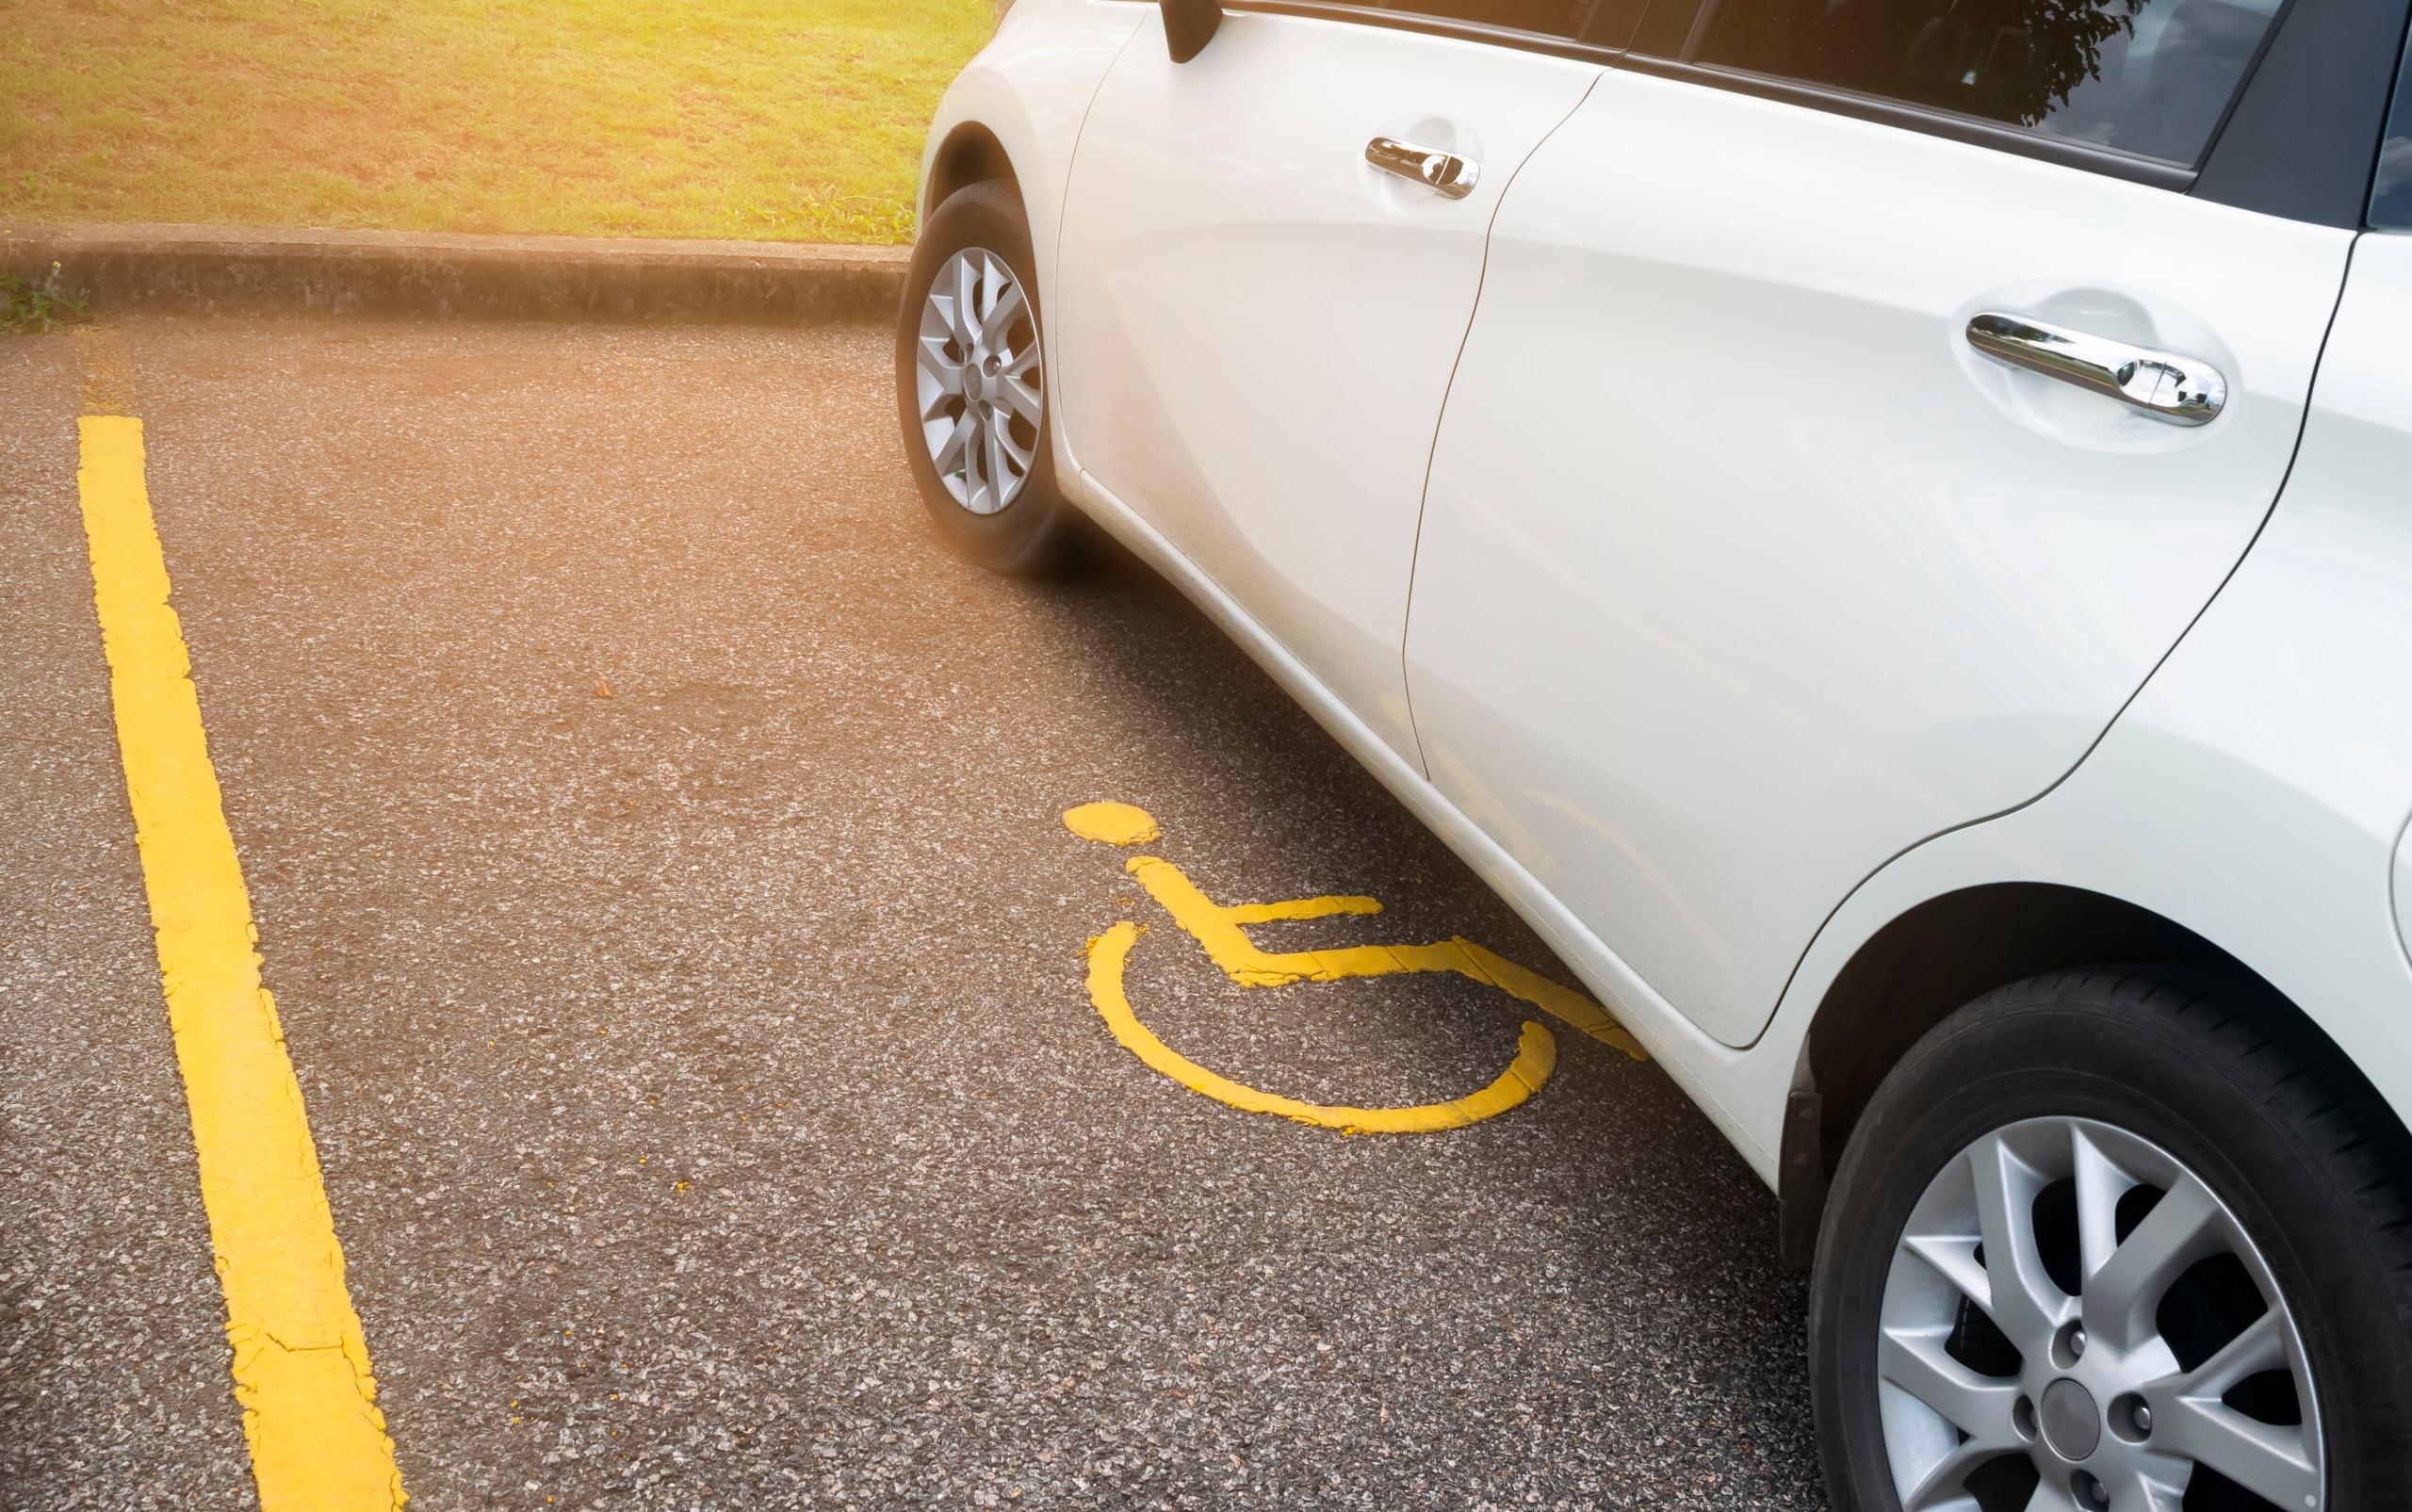 white car park in a marked disabled bay